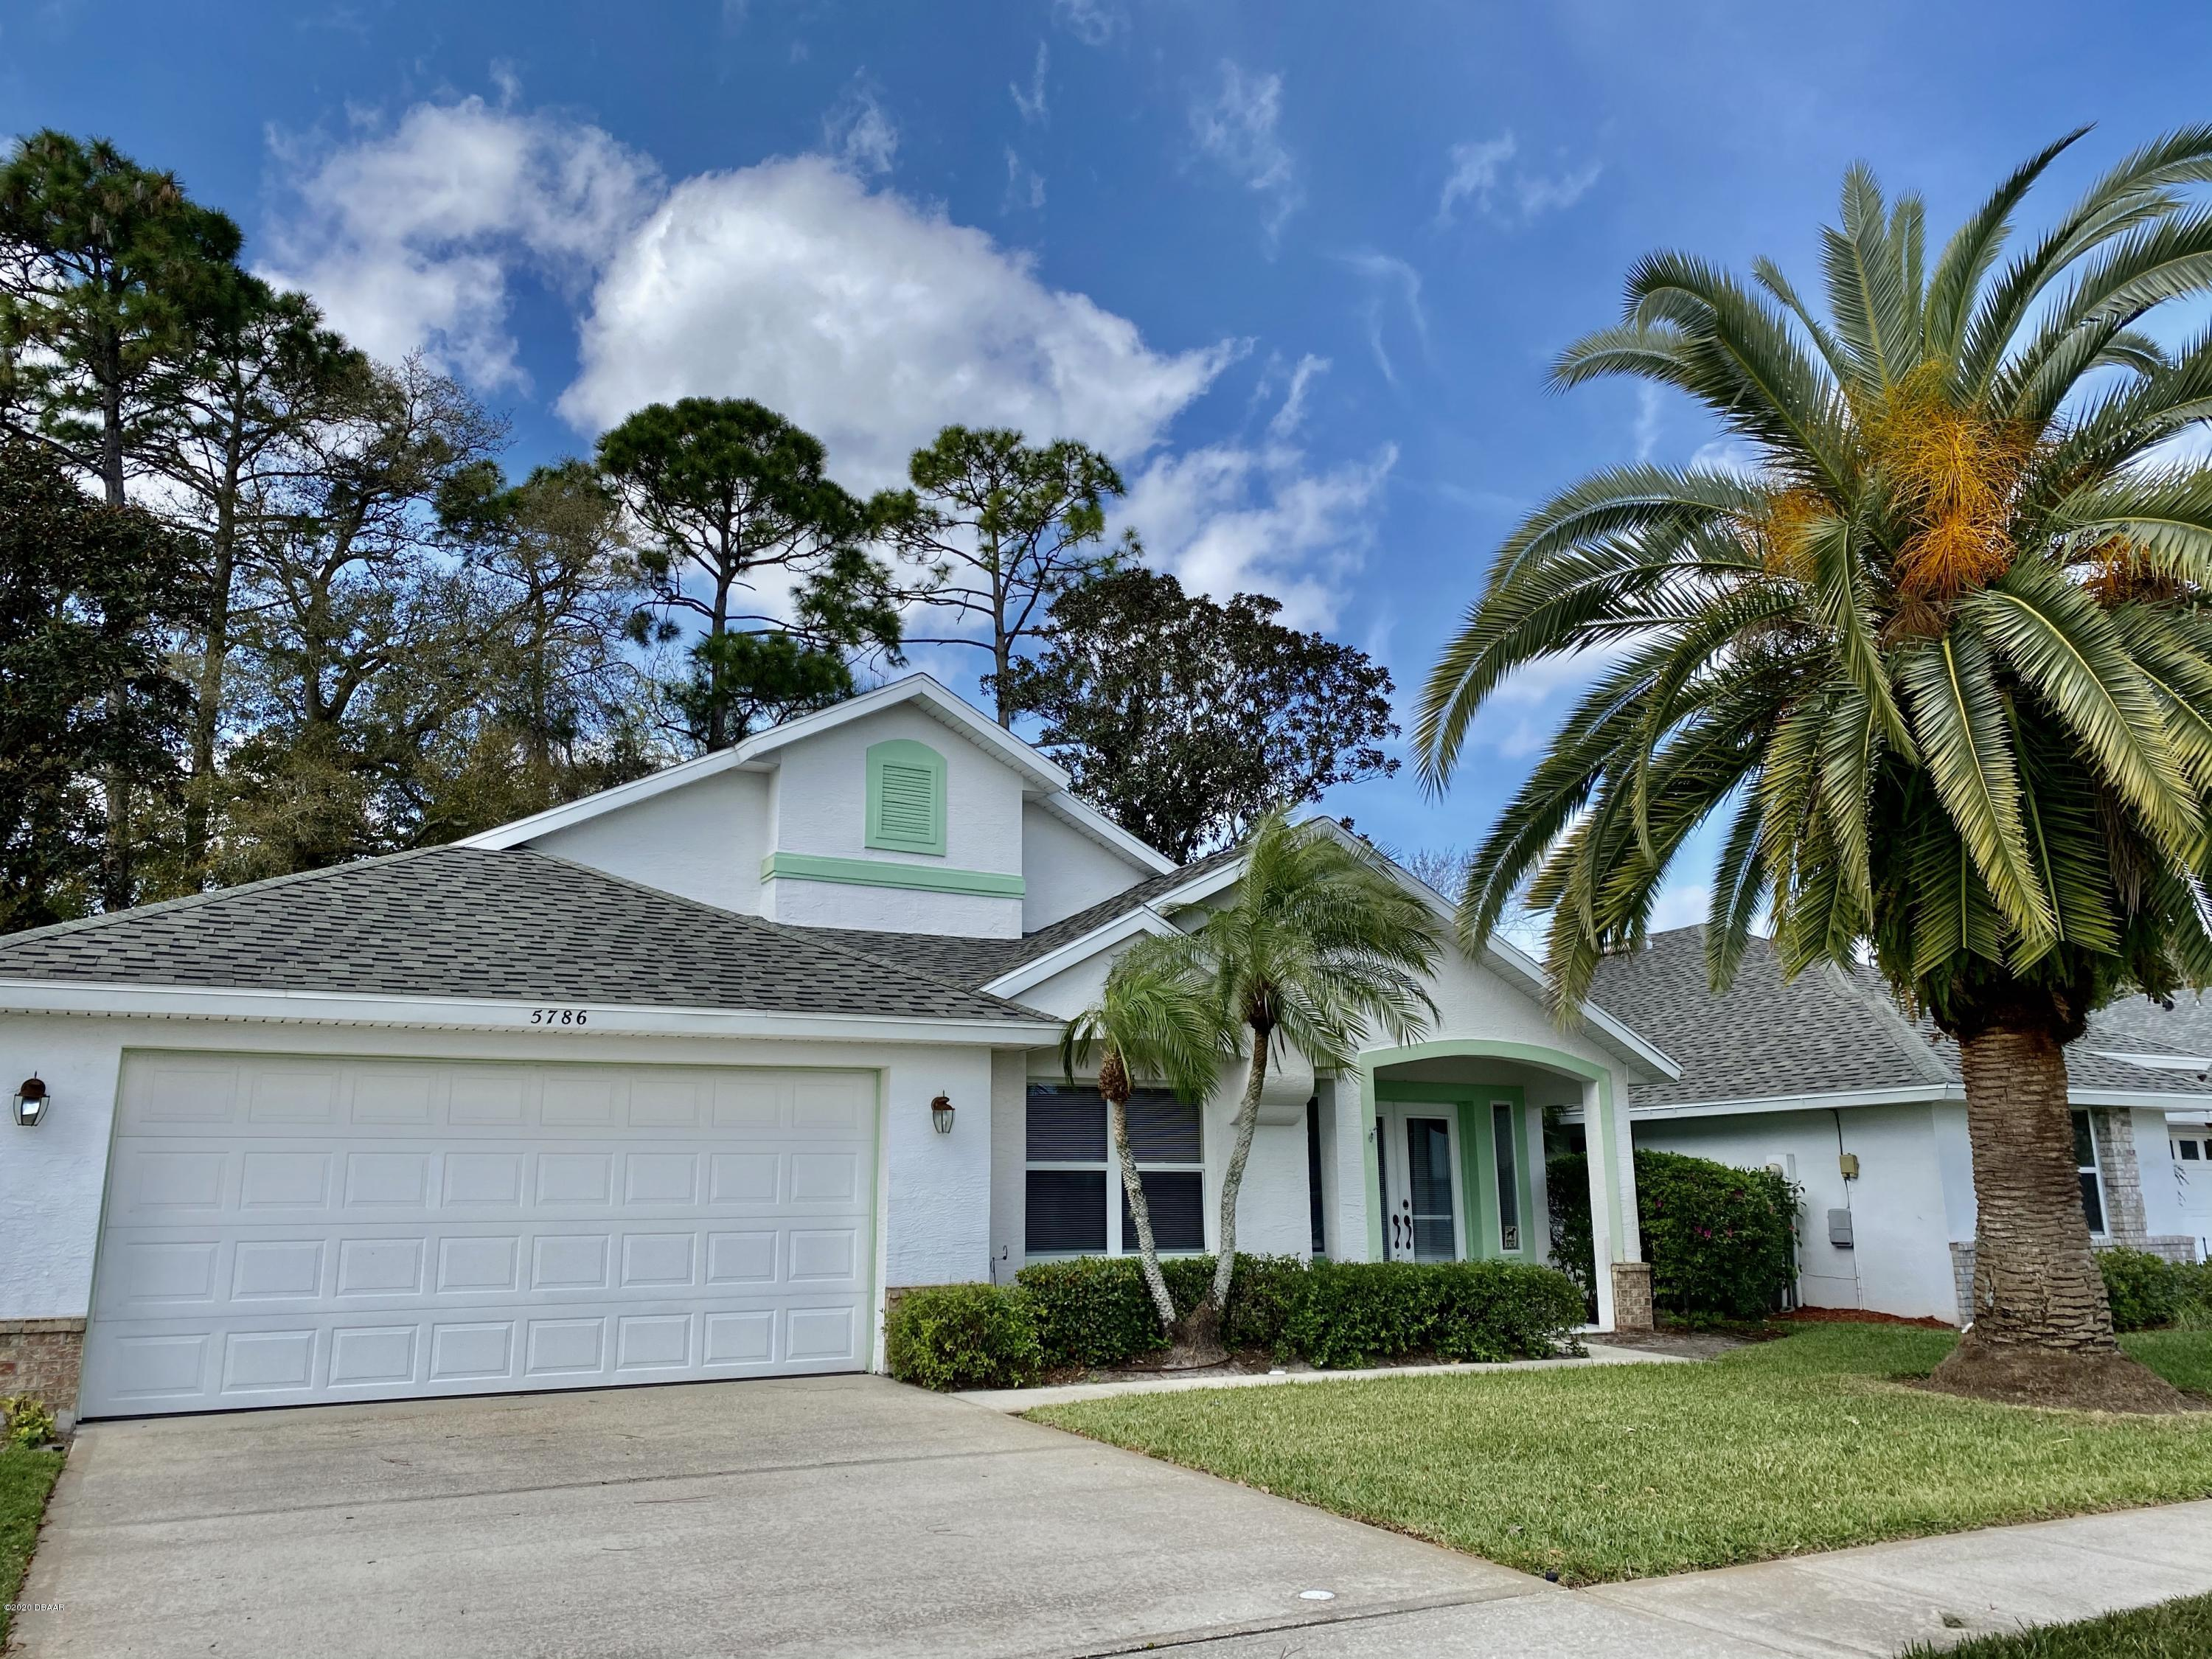 Photo of 5786 Heathermere Lane, Port Orange, FL 32127